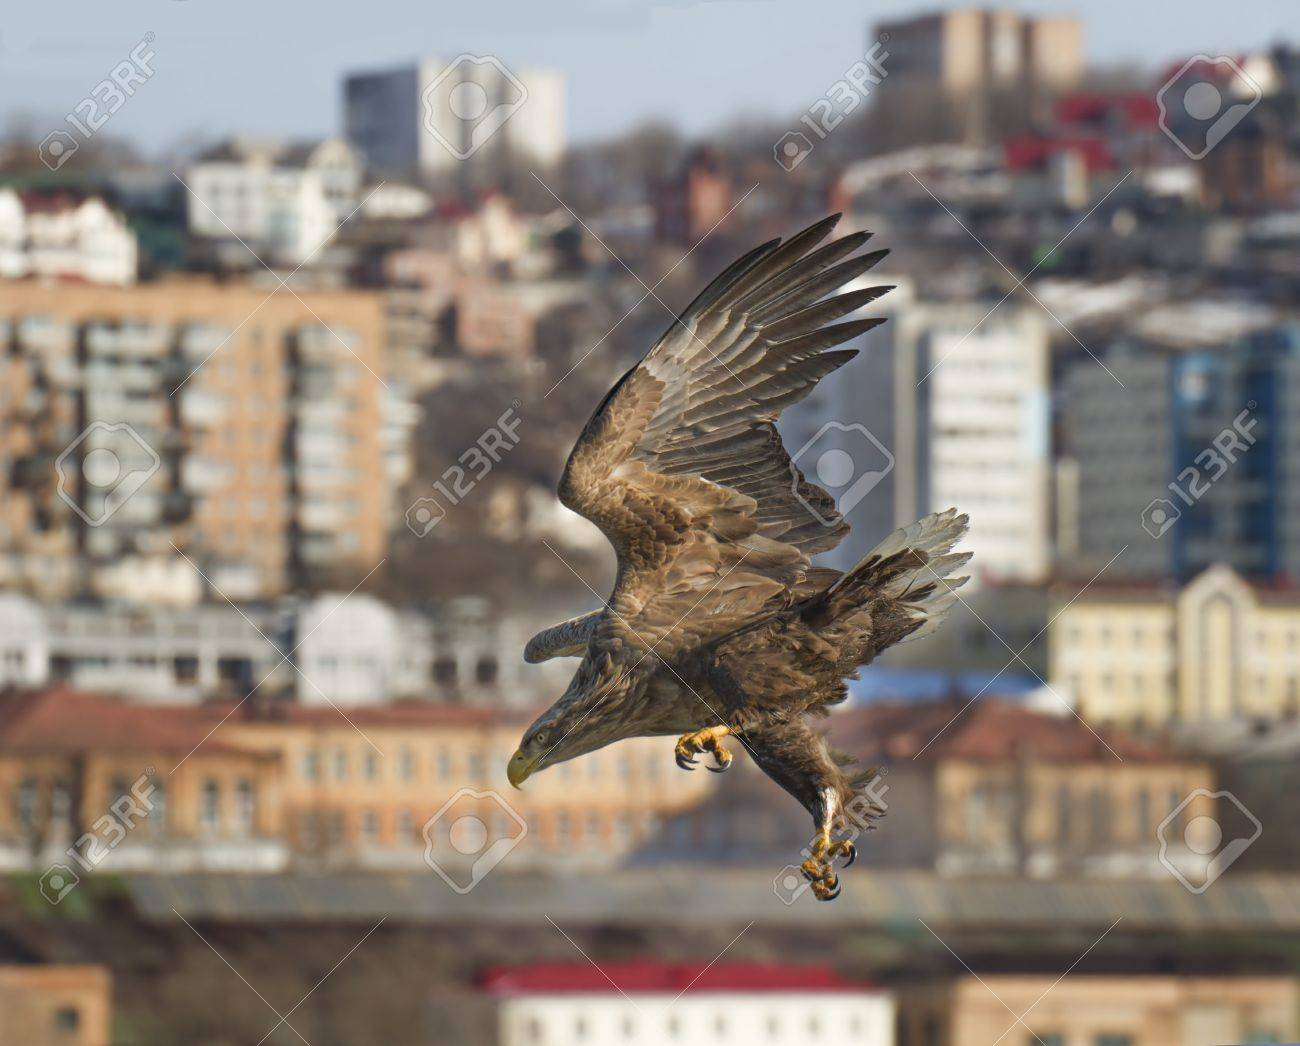 Rush White Tailed Eagle Over The City Vladivostok Russia Stock